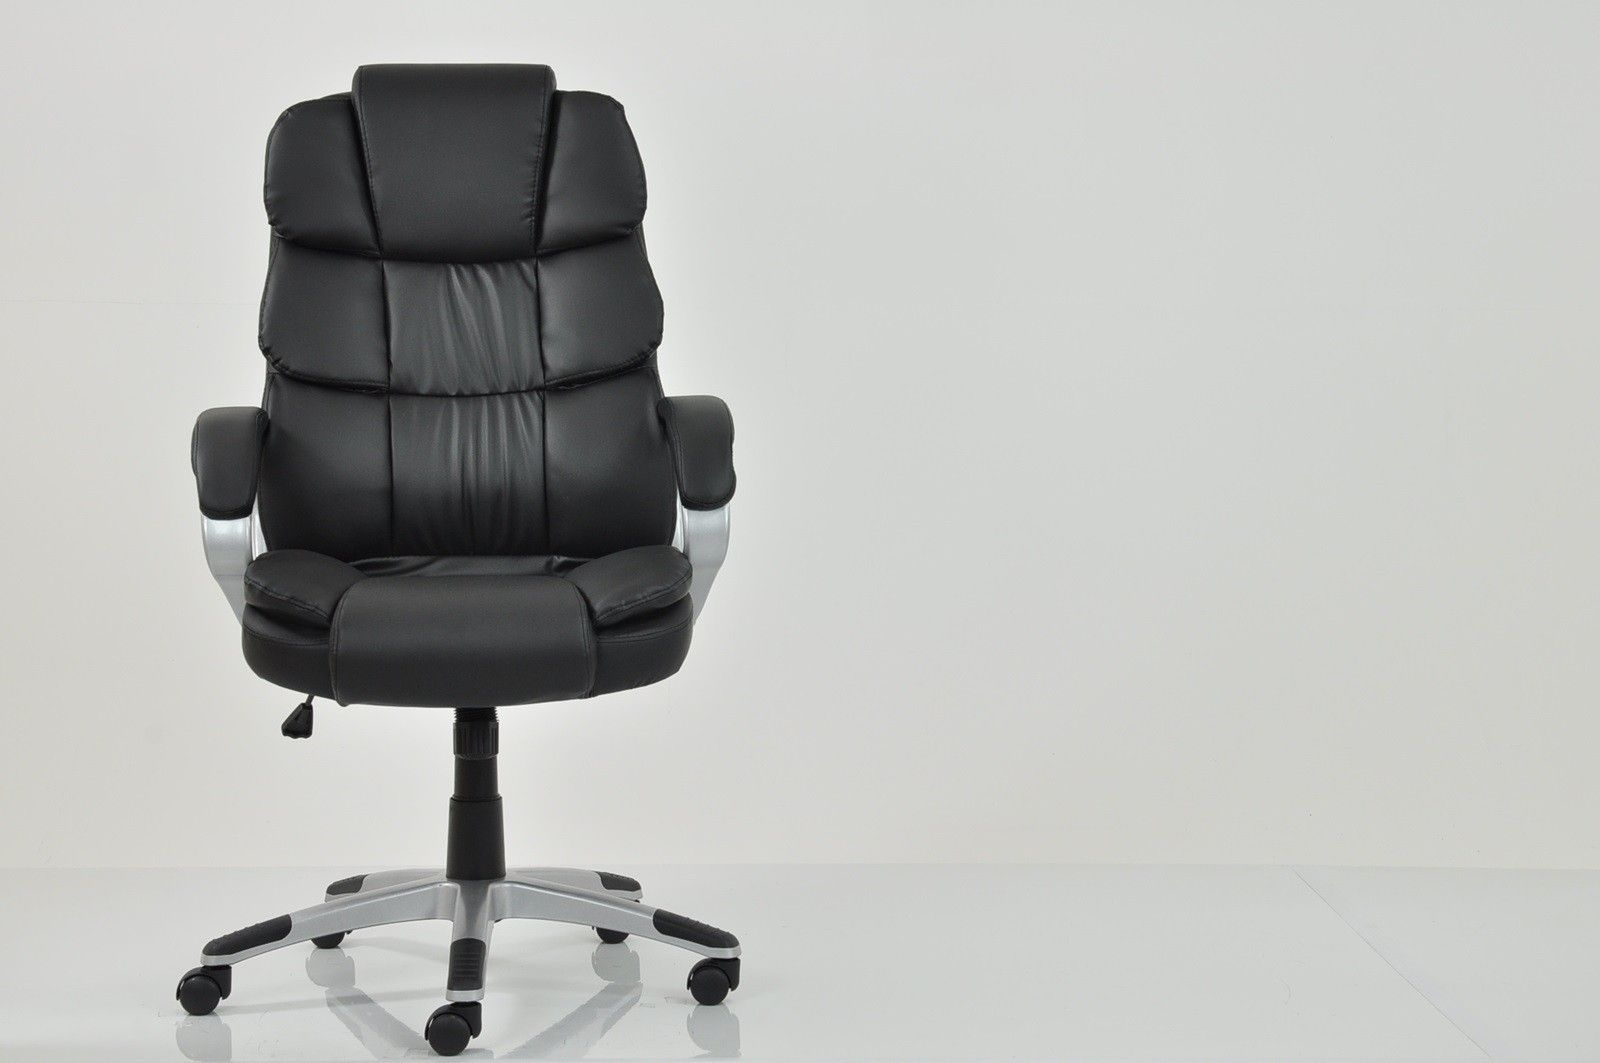 Halo Executive Home Office Chair Black Office Chair Chair Black Office Chair